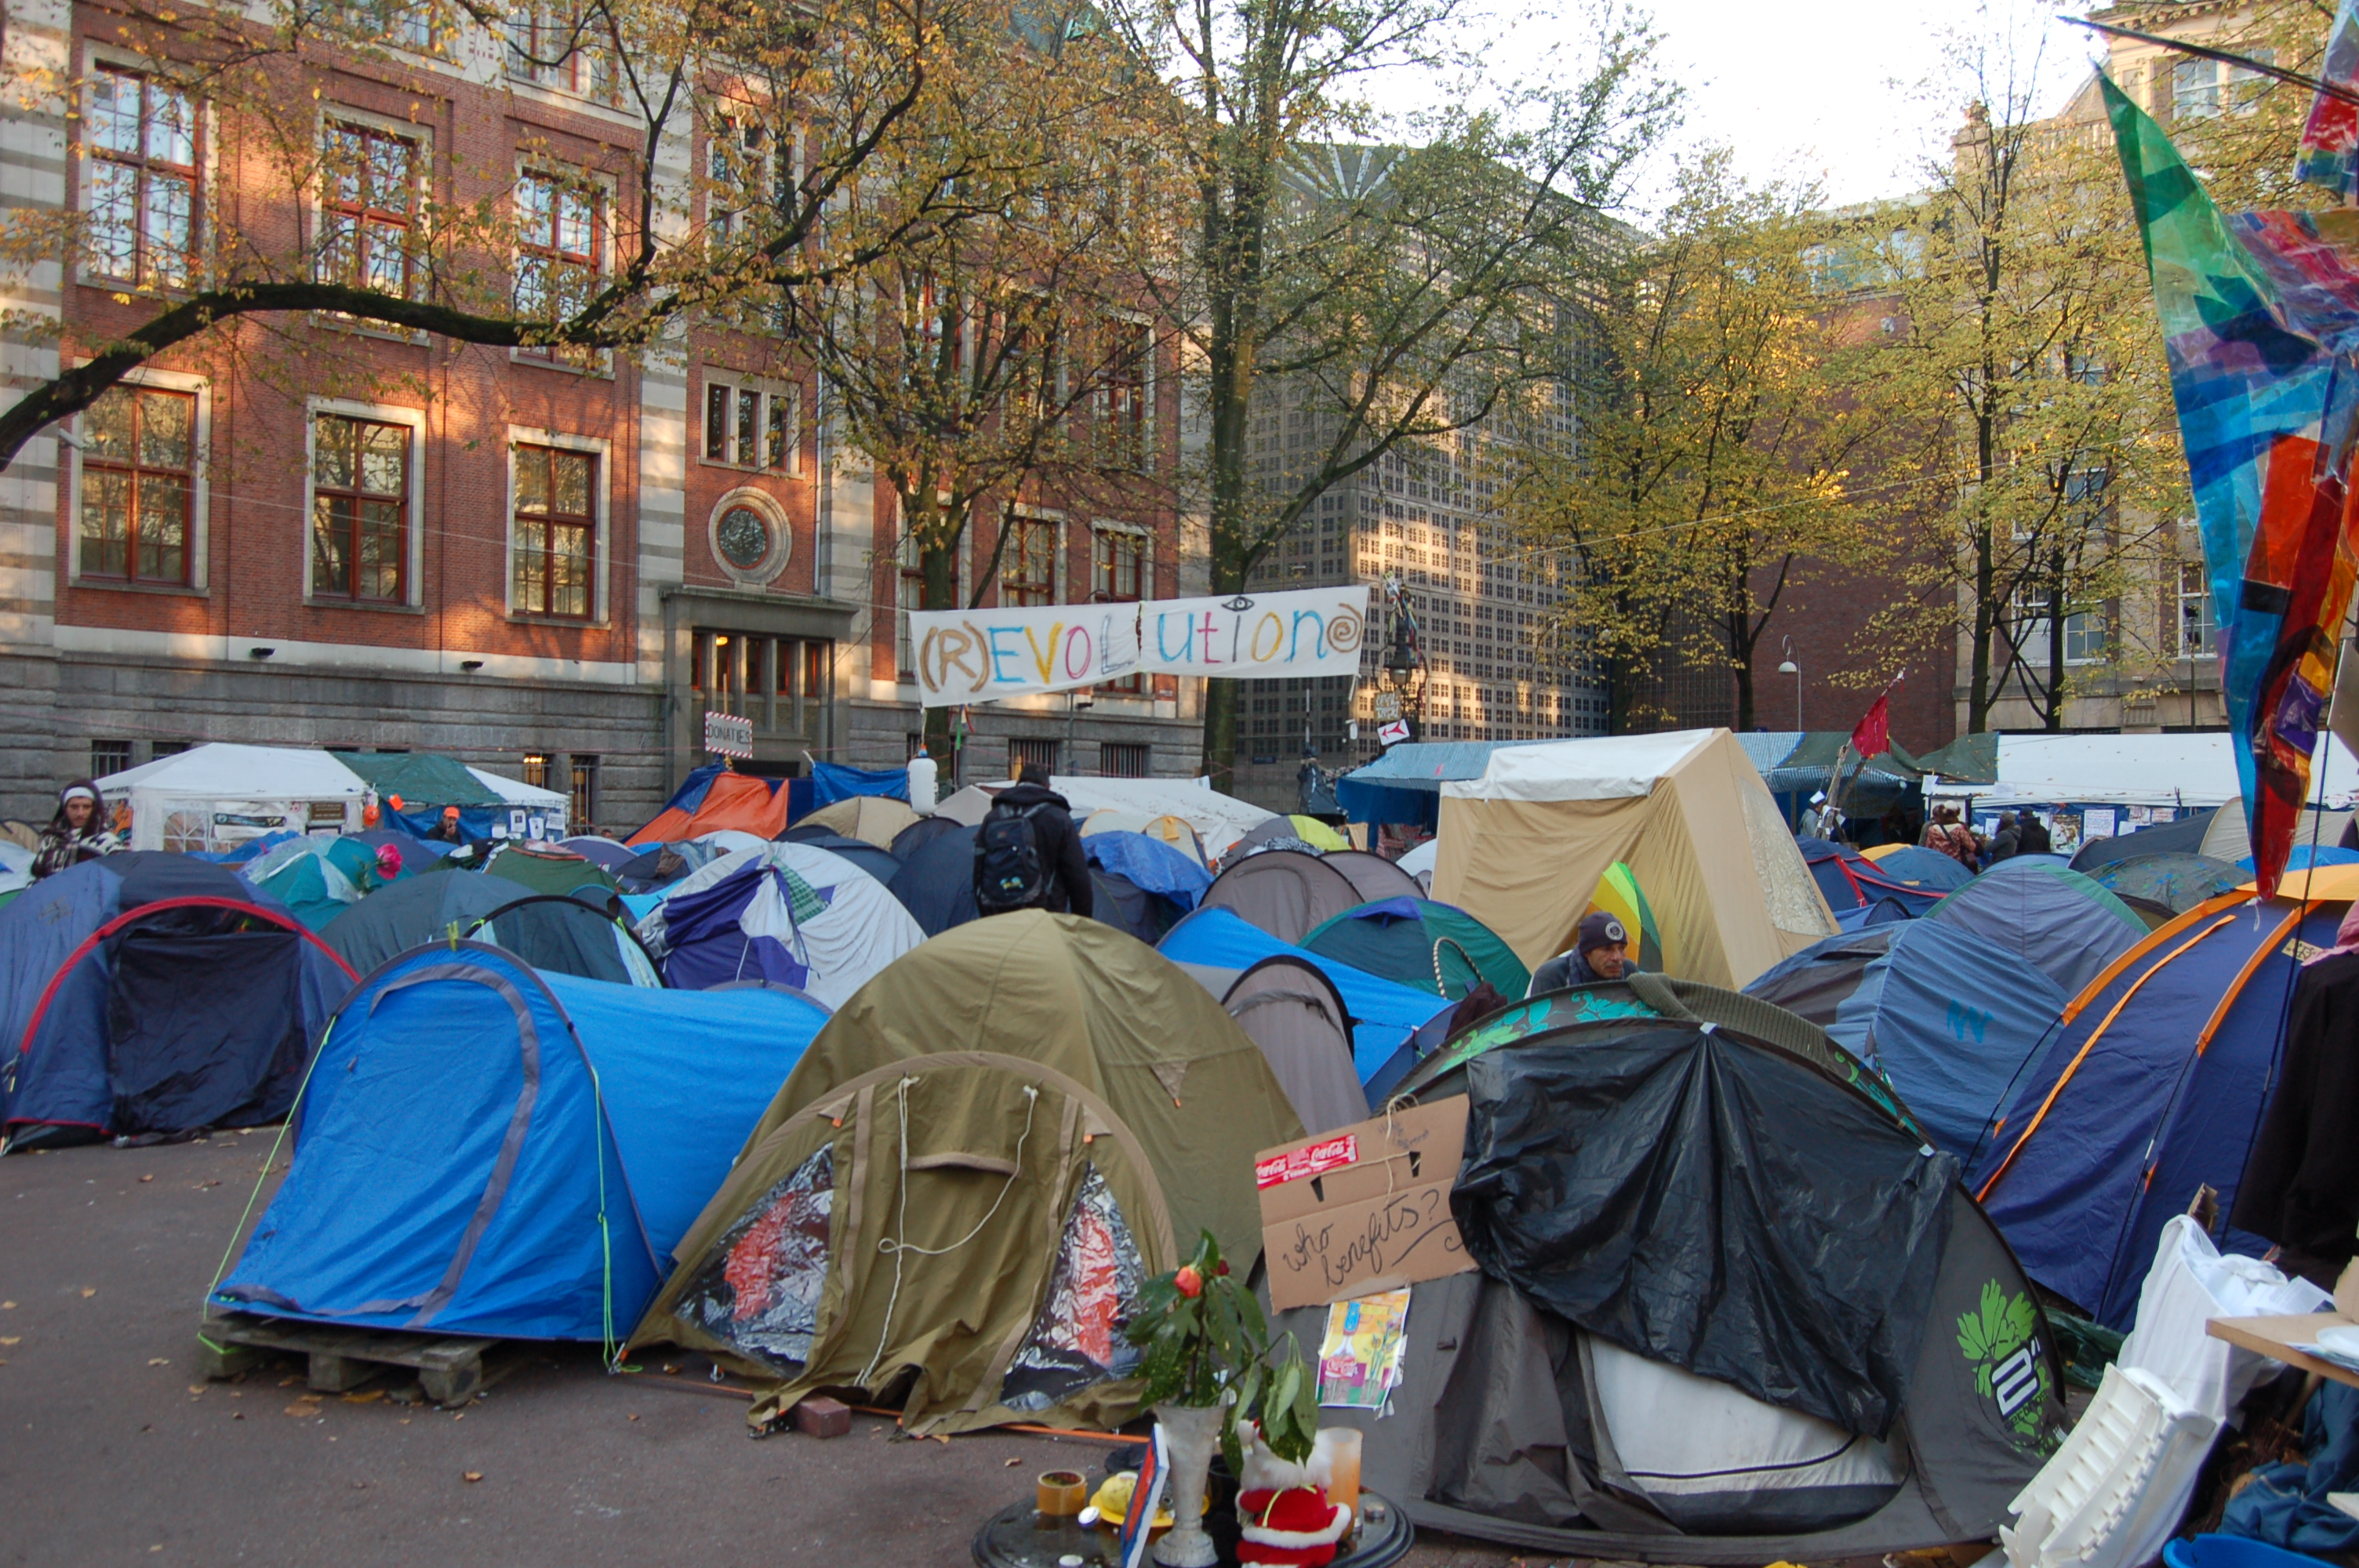 Reflections on Occupy: The 'Hopeless Defence'